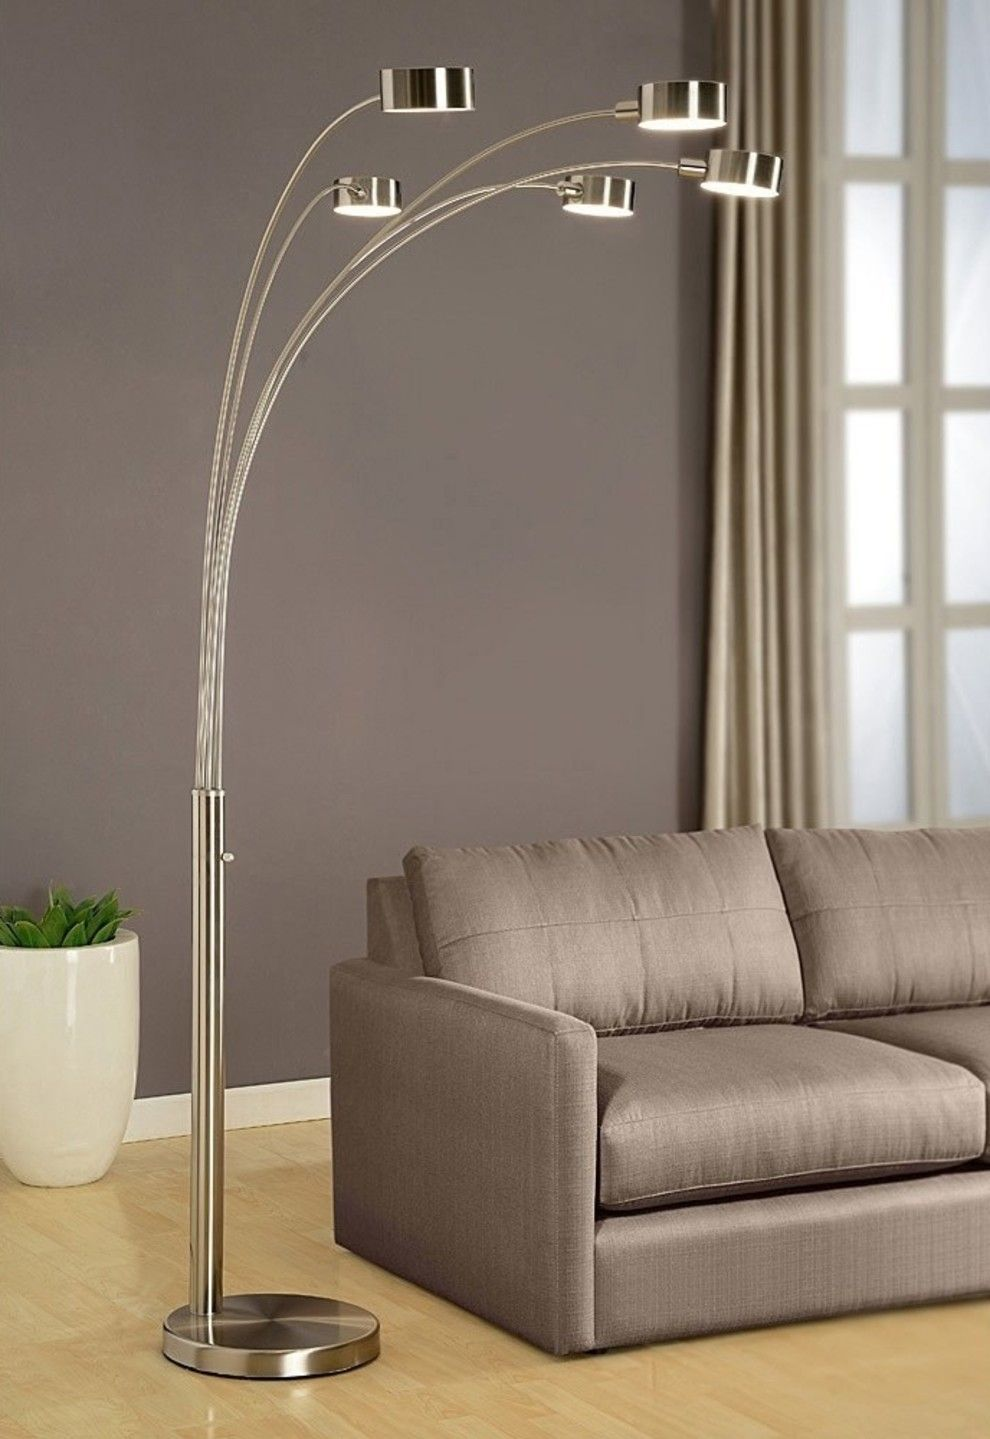 31 Lamps That Will Light Up Your Life Contemporary Floor Lamps Tree Floor Lamp Arc Floor Lamps